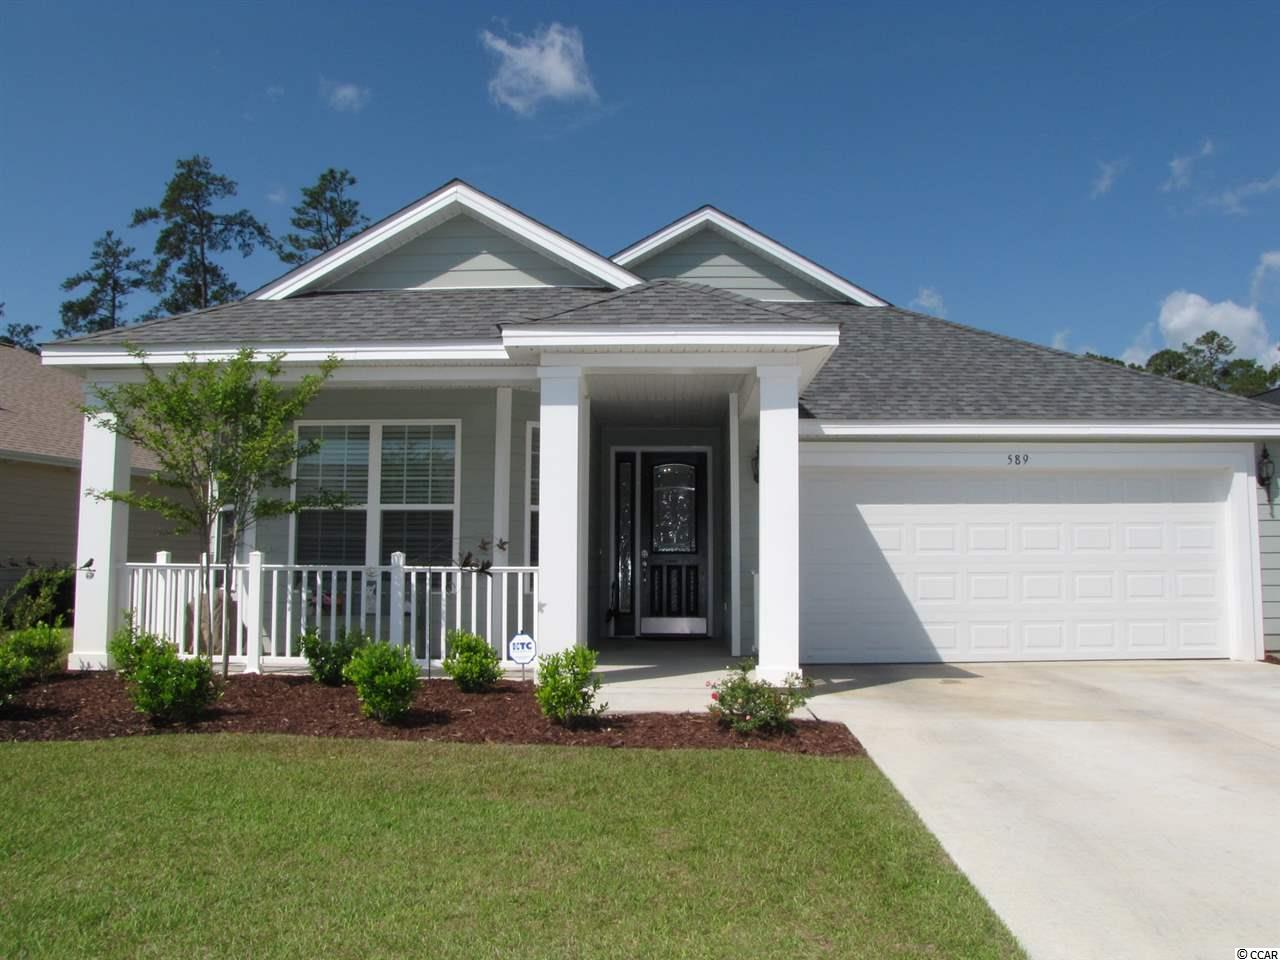 589 GRAND CYPRESS WAY, Murrells Inlet, SC 29576